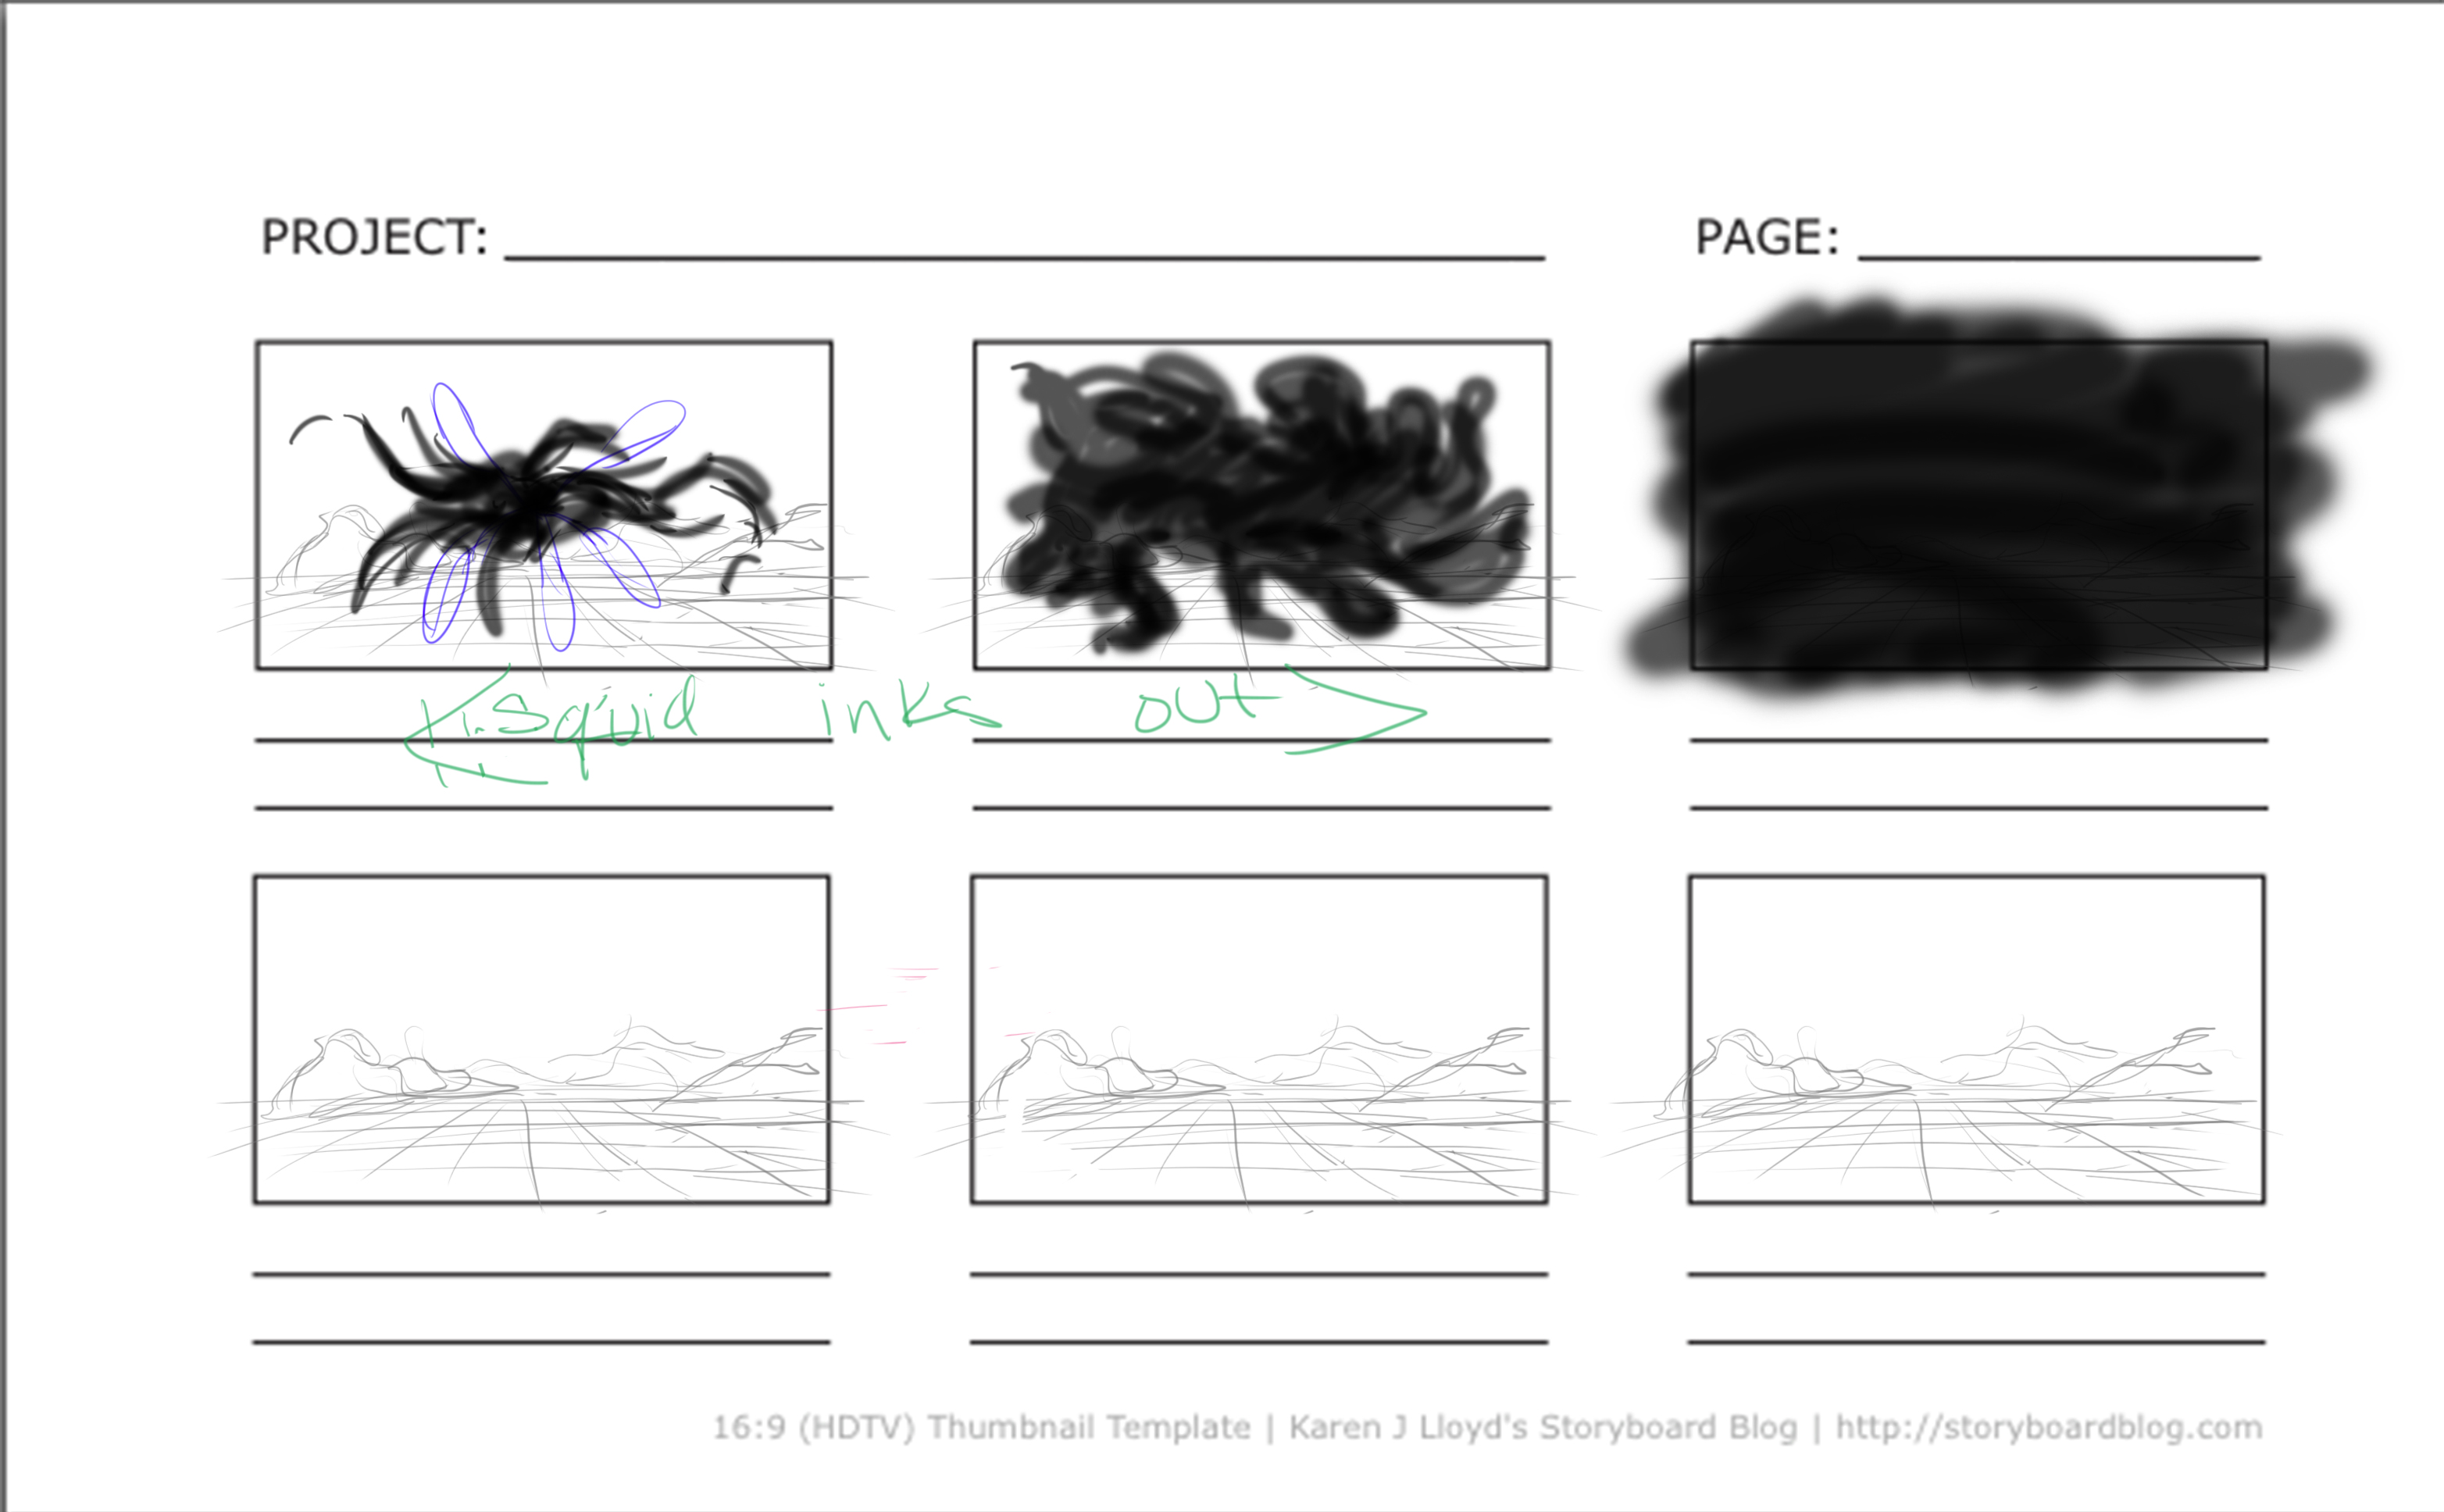 Storyboards 3 - The Squid